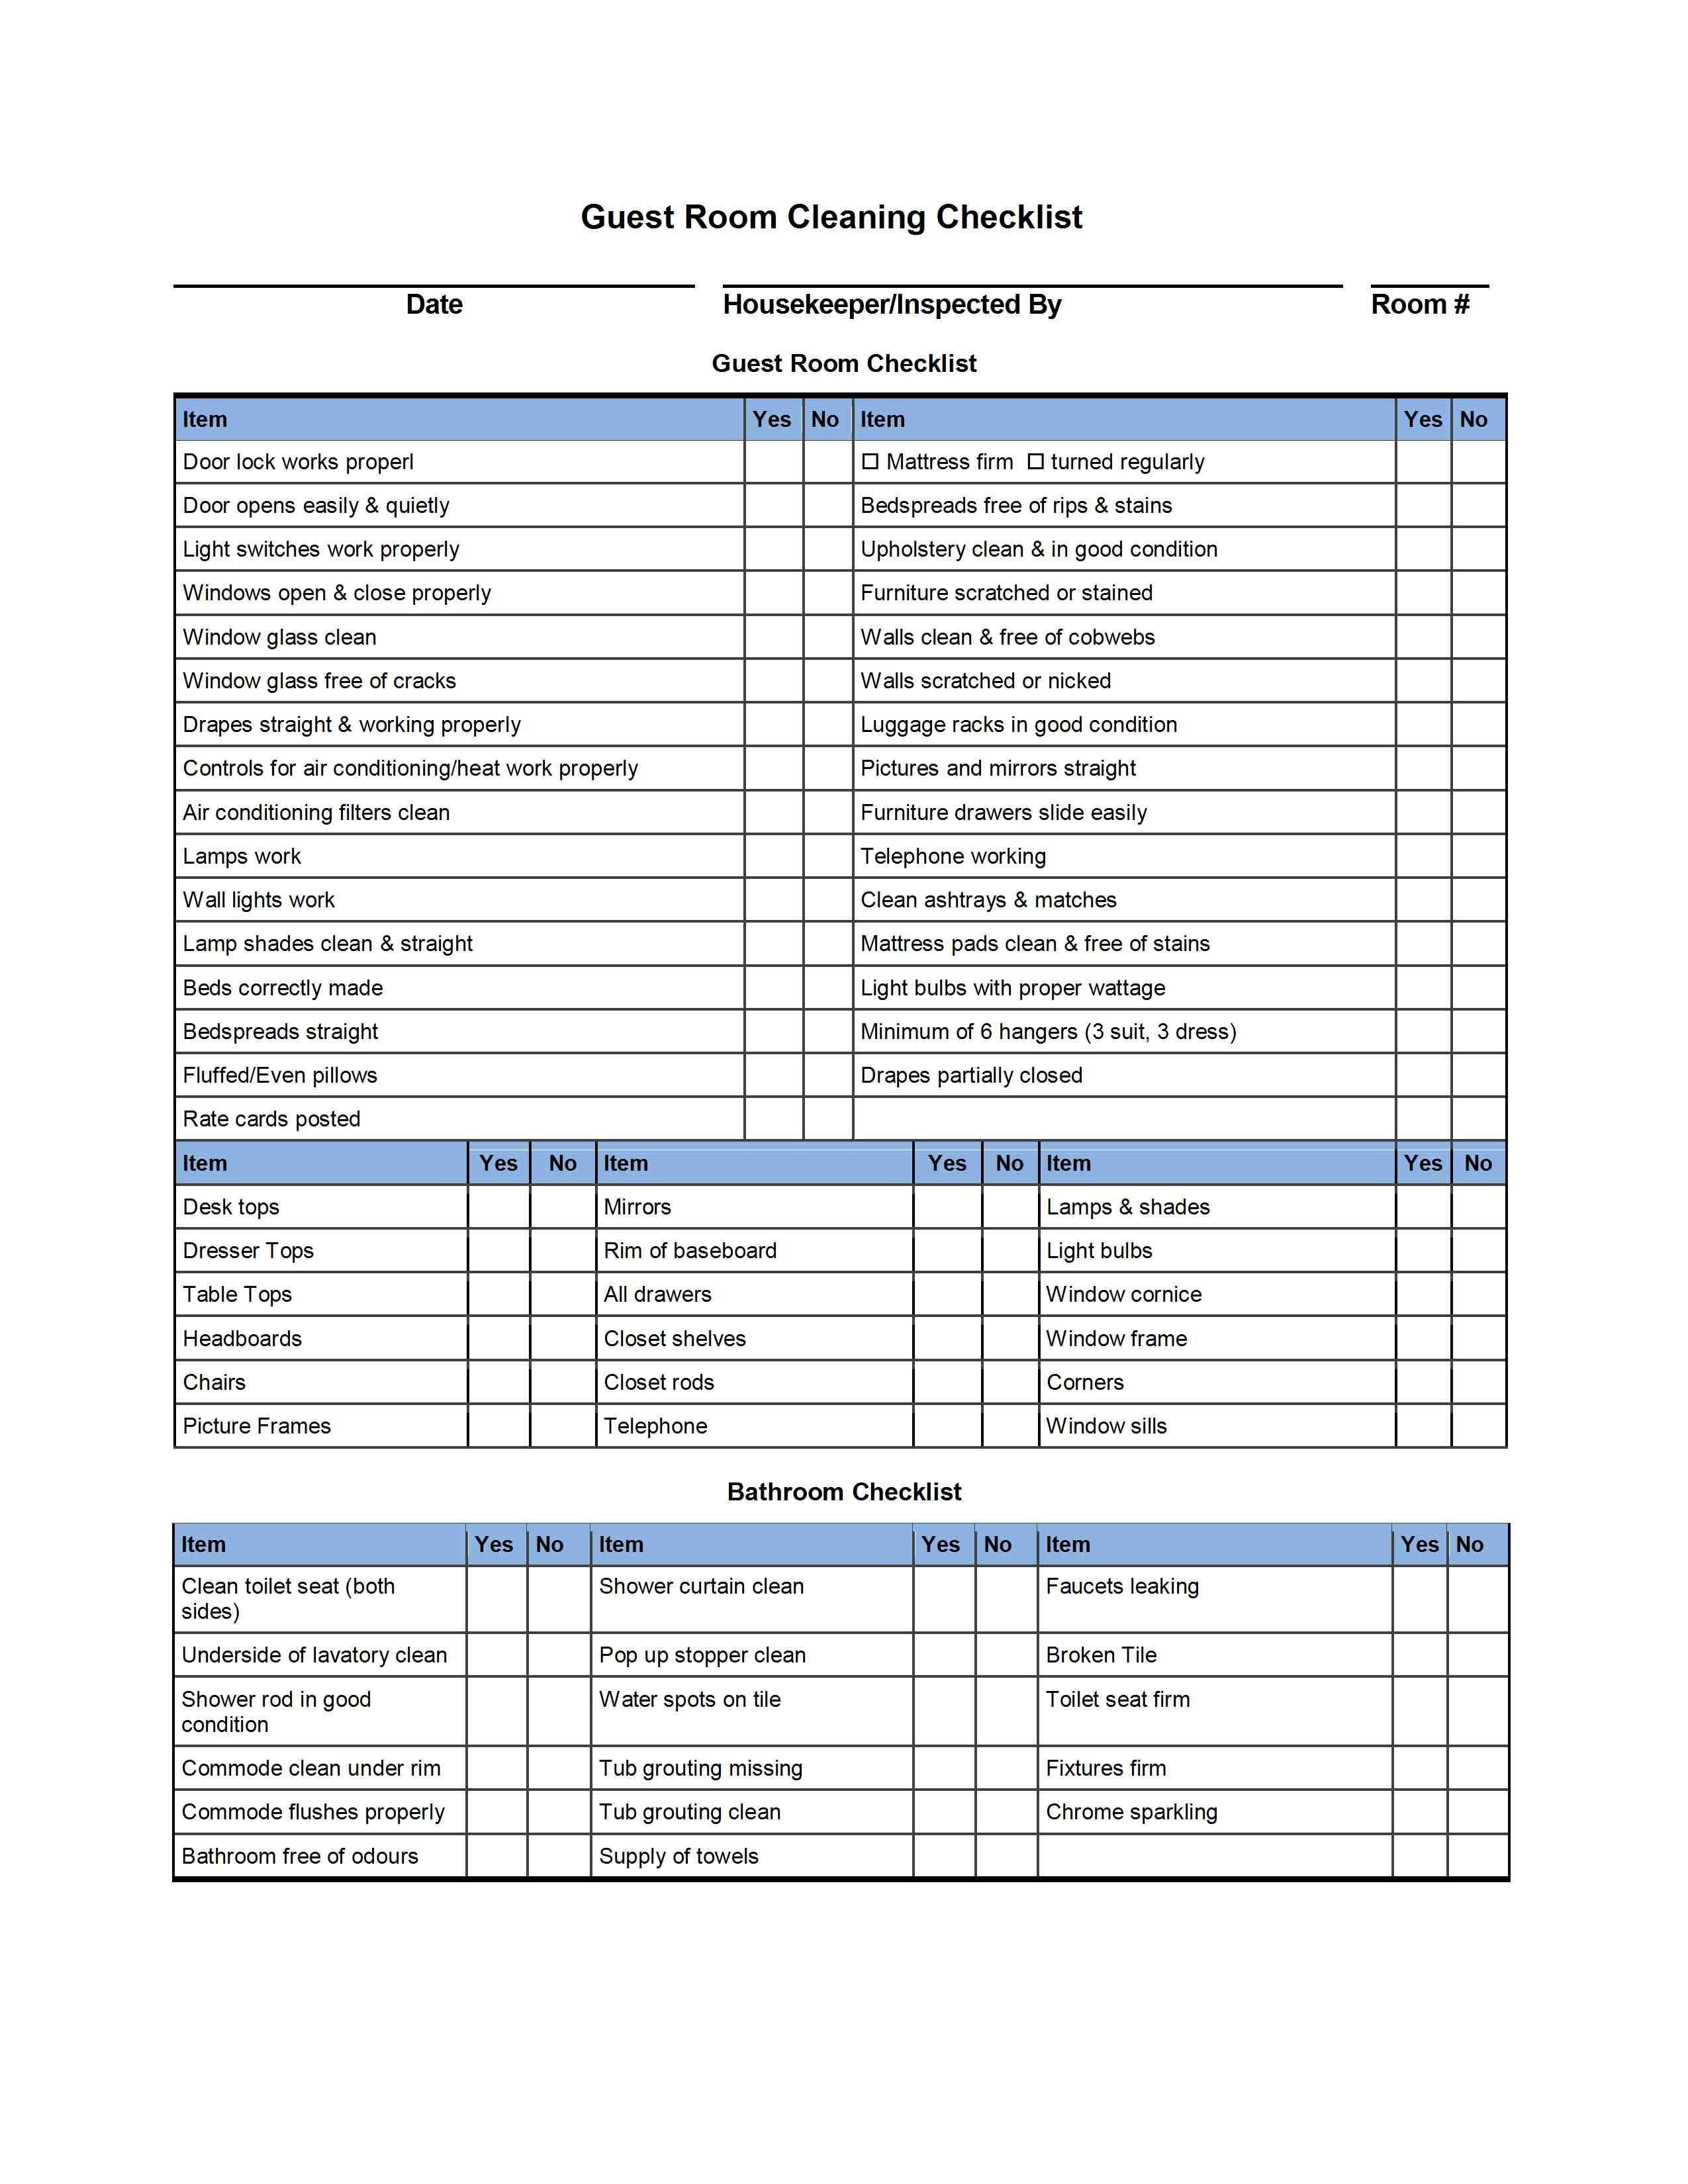 Hotel Room Cleaning Checklist Templates External House Cleaning